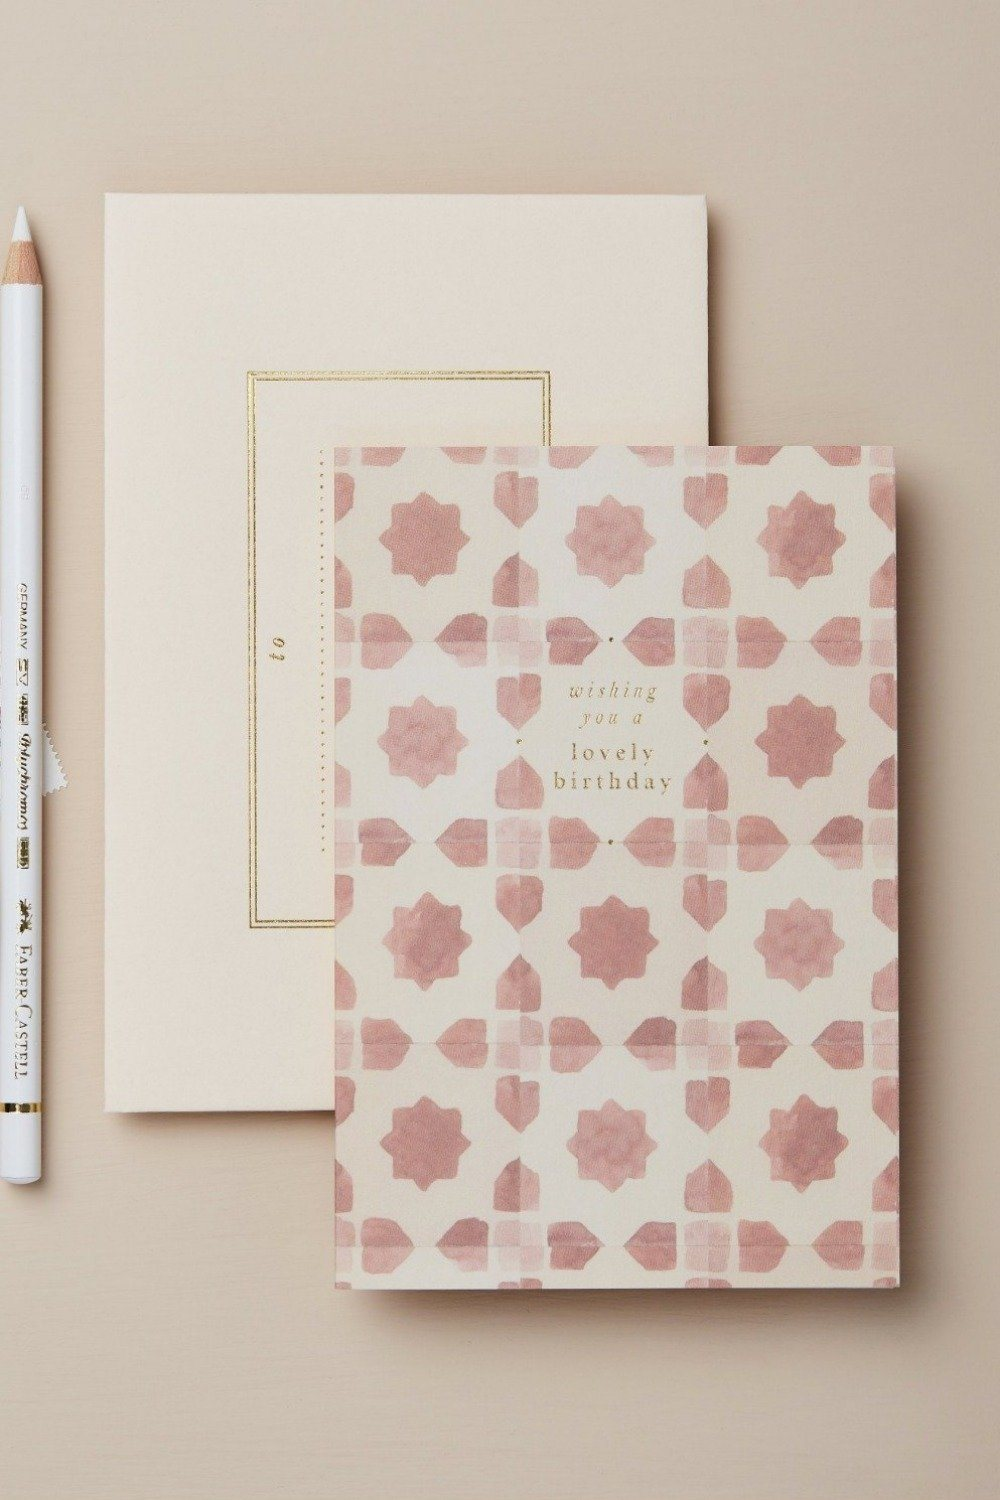 Wanderlust Card - Pink Tiles Wishing You a Lovely Birthday Gifts & Stationery Wanderlust